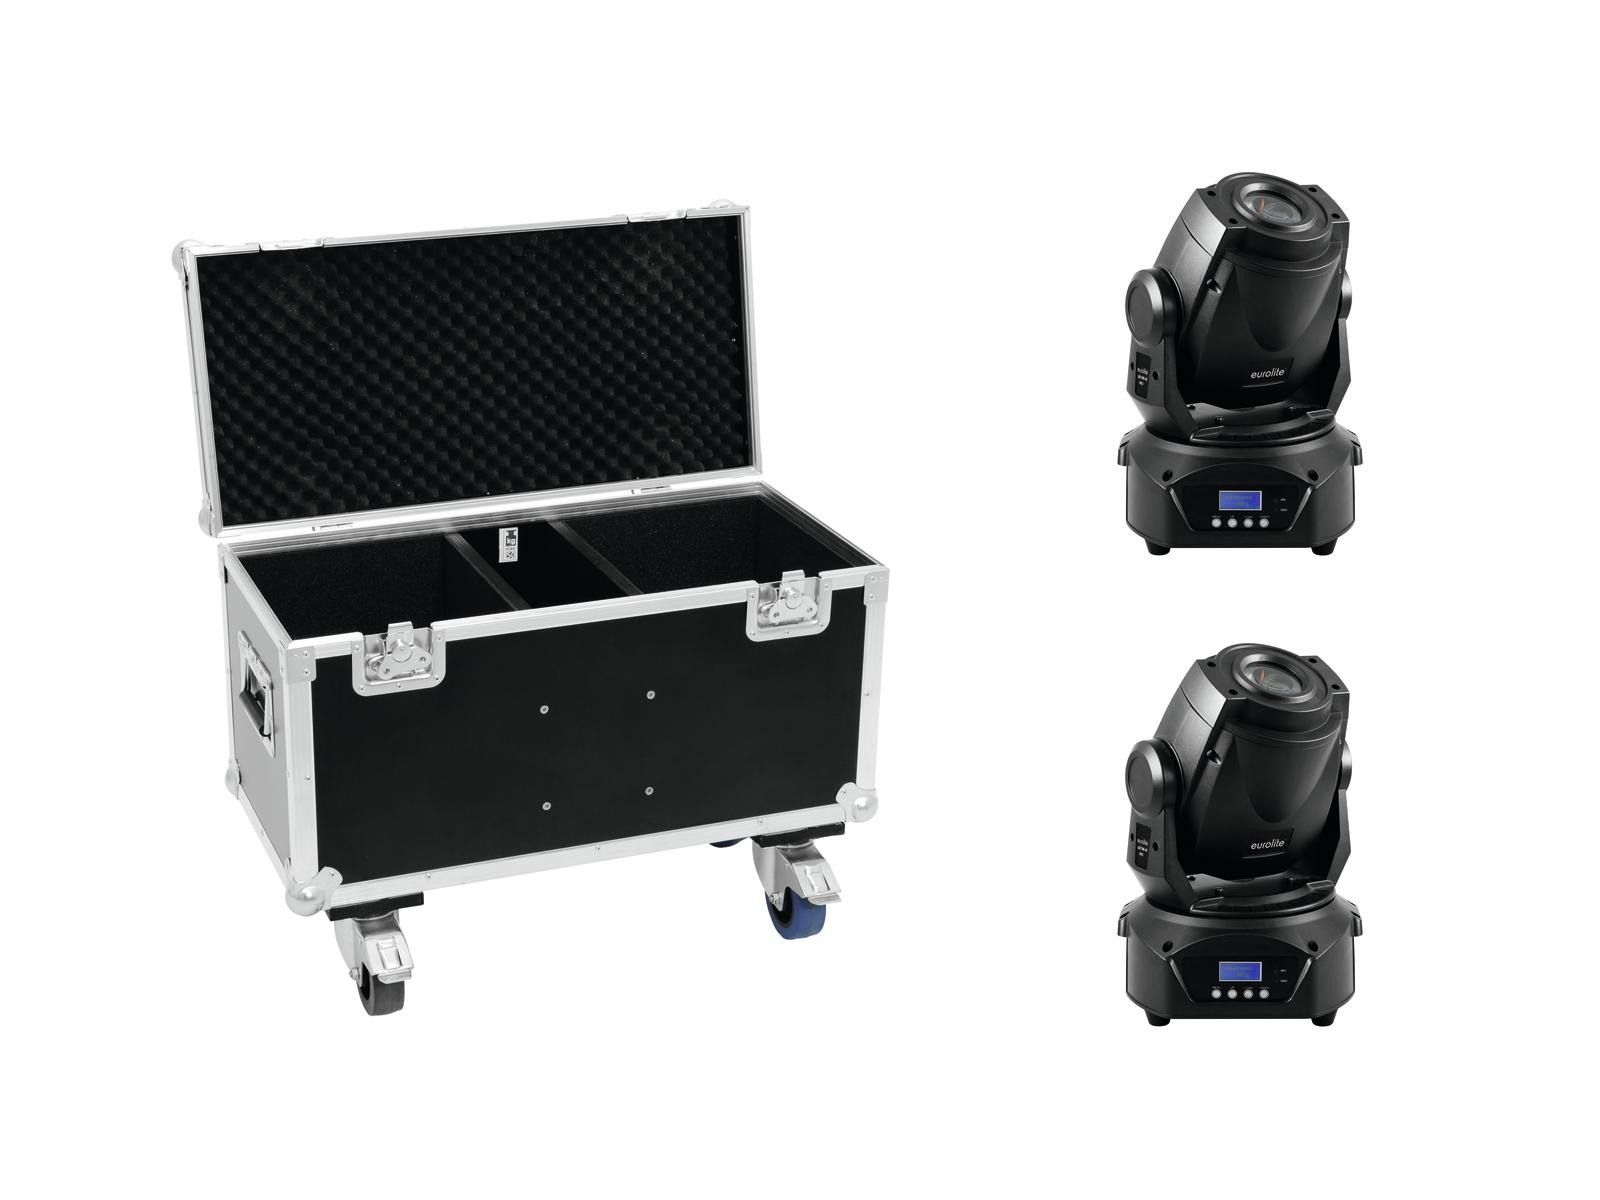 EUROLITE Set 2x LED TMH-60 MK2 + Case con ruote